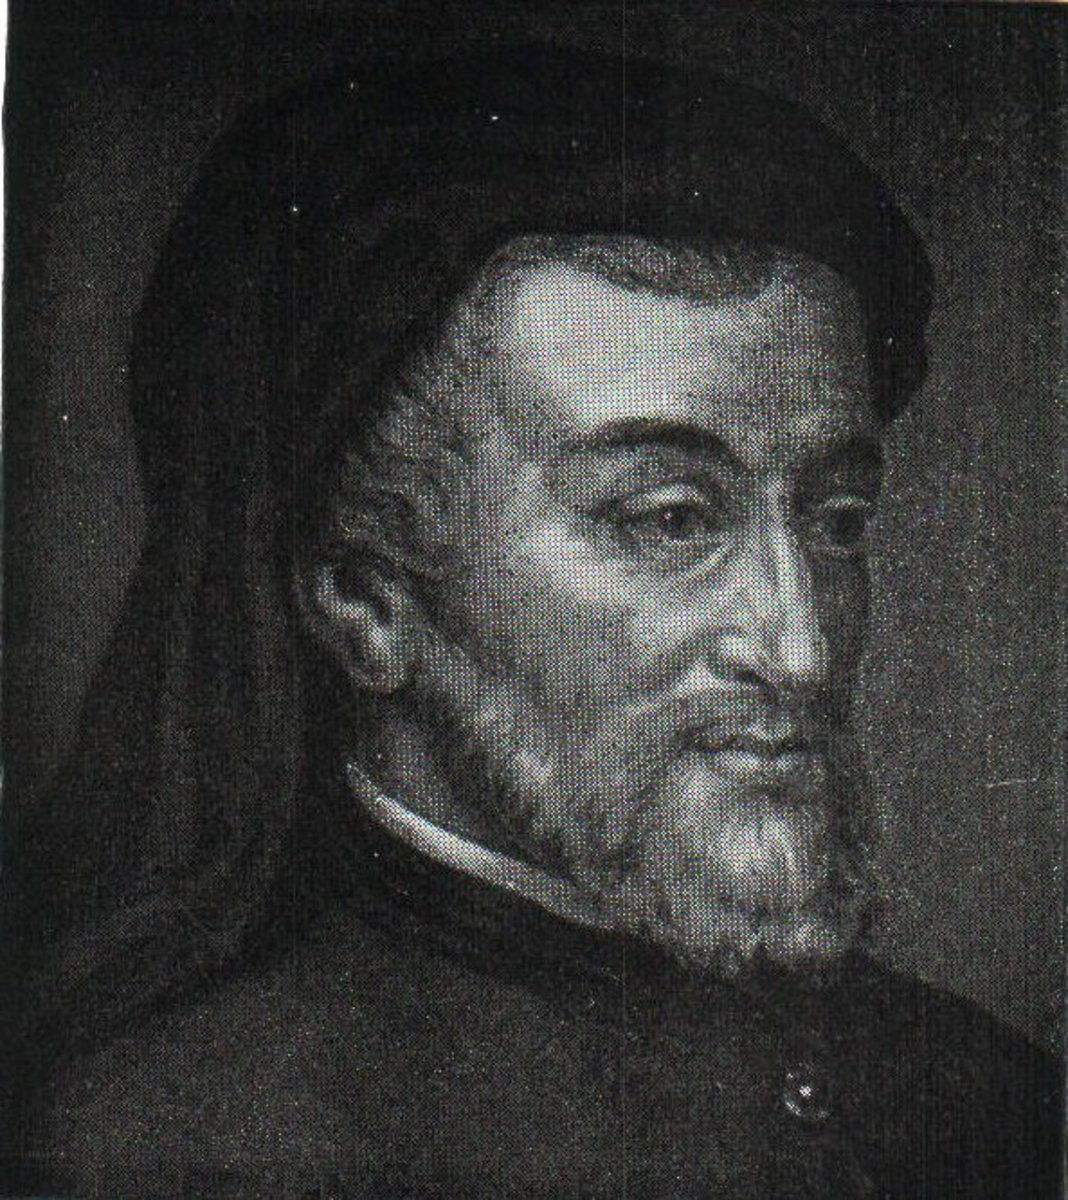 Geoffrey Chaucer was born into the Middle Class, but was very aware of all the classes.